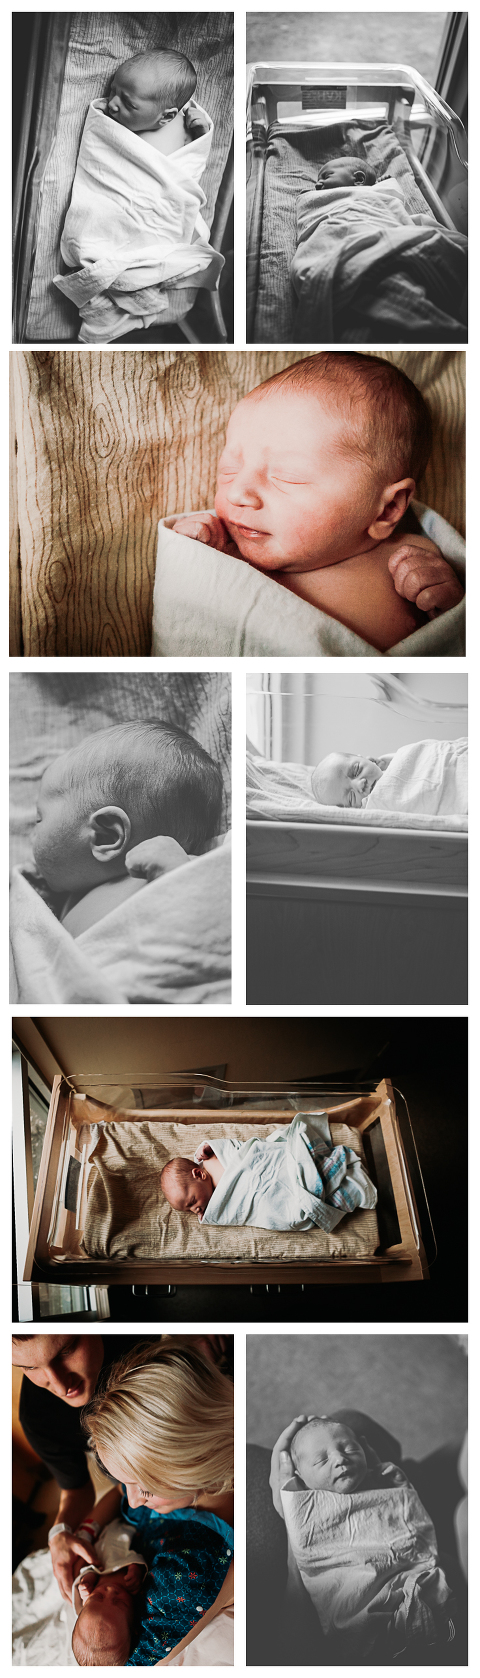 Baby Cayson, lifestyle newborn session at the hospital by Hailey Haberman Photography in Ellensburg WA